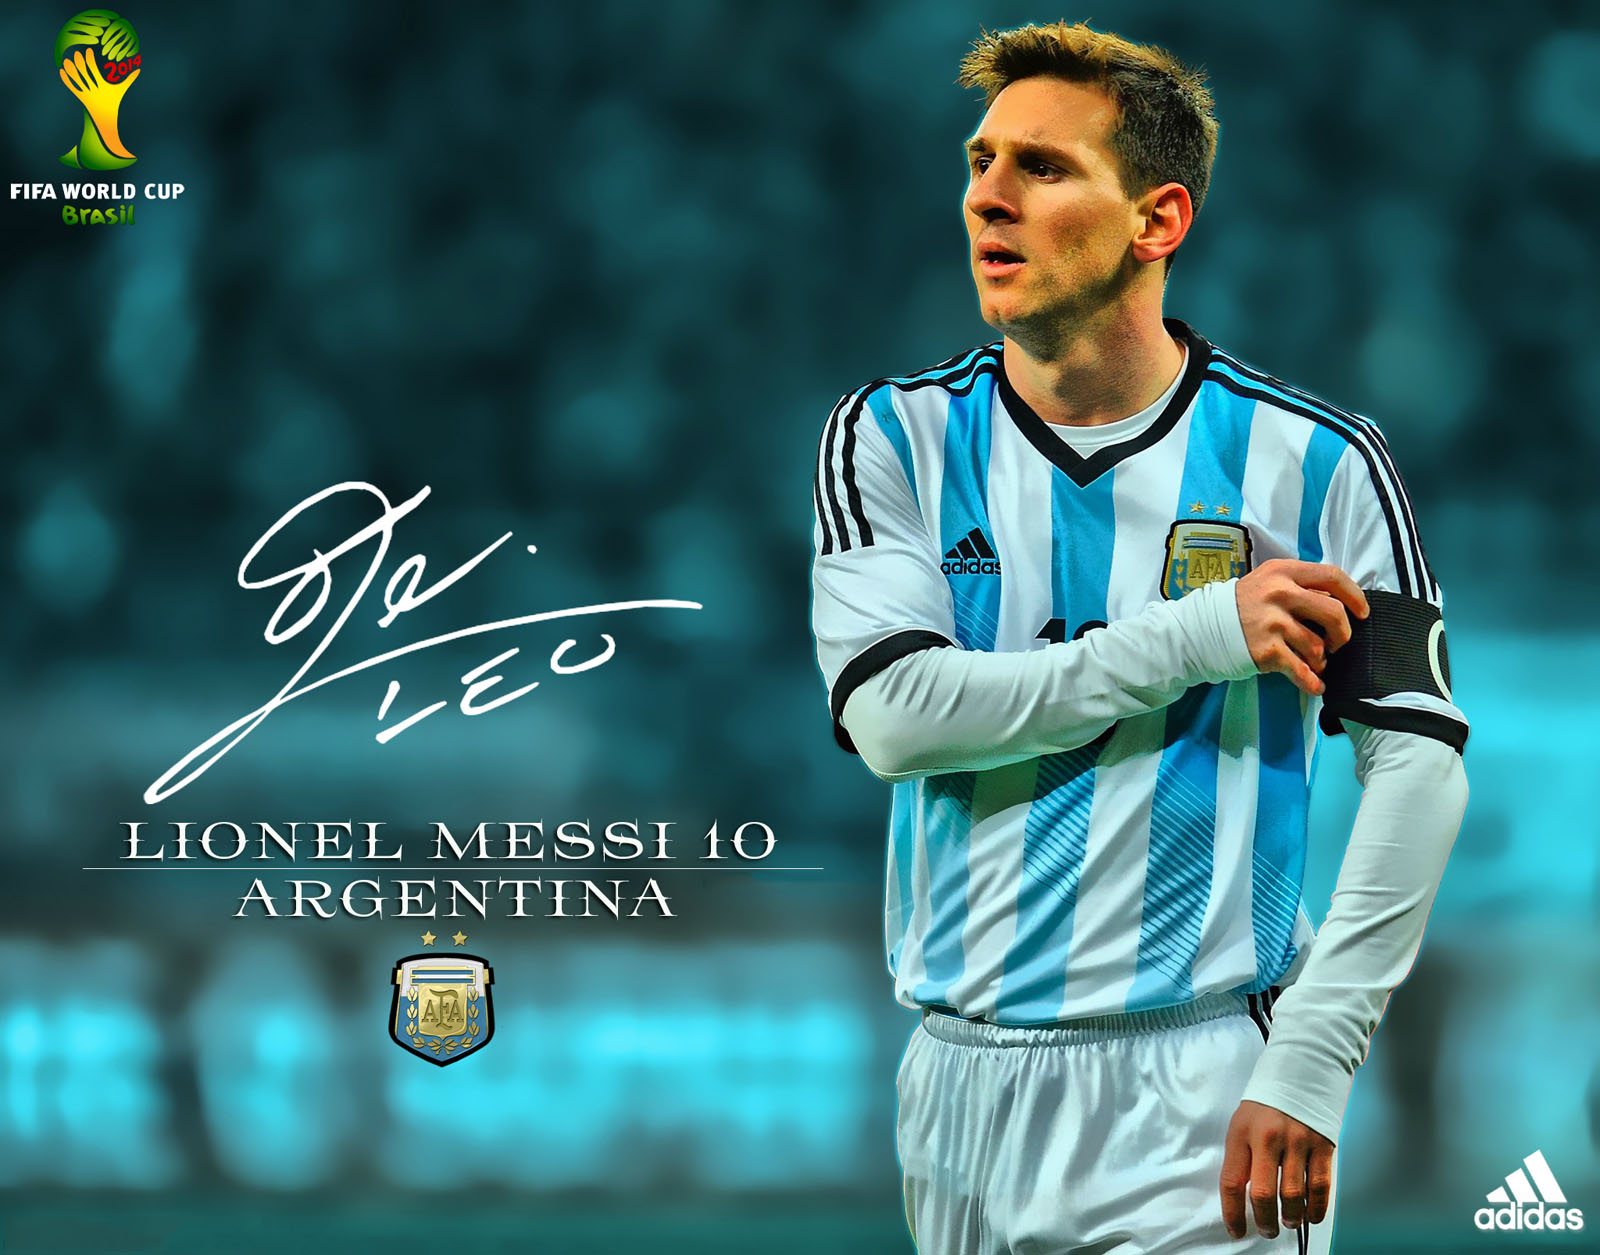 Lionel messi wallpaper 2014 world cup